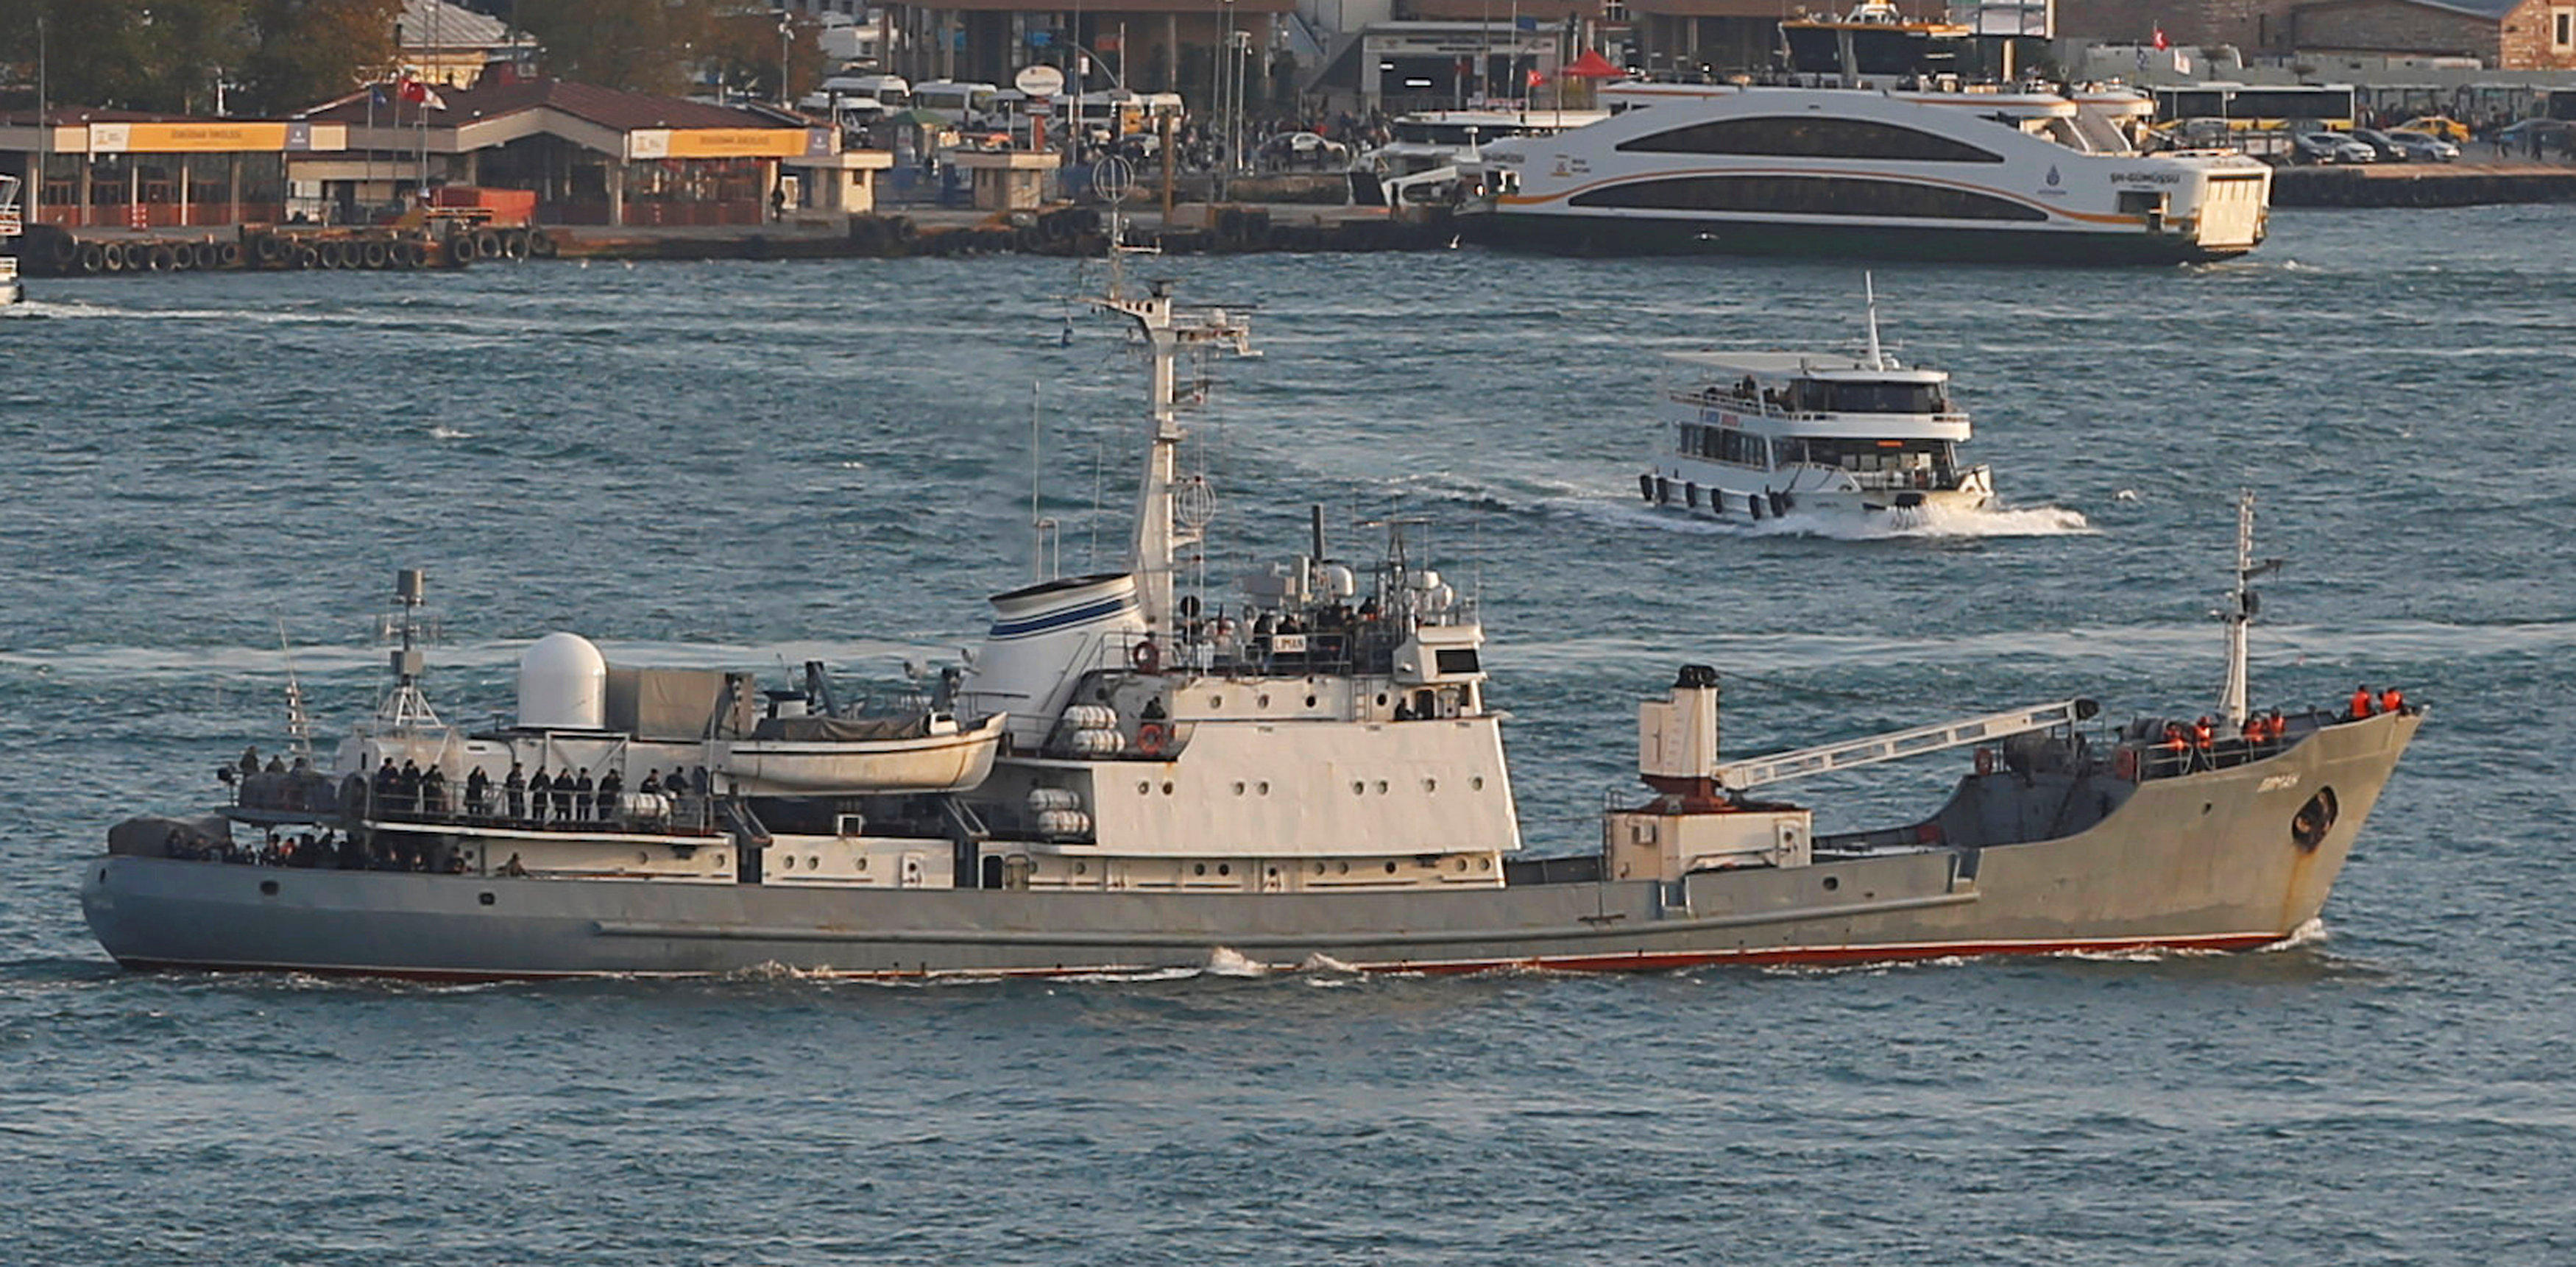 Russian Navy Reconnaissance Ship Liman Collides With